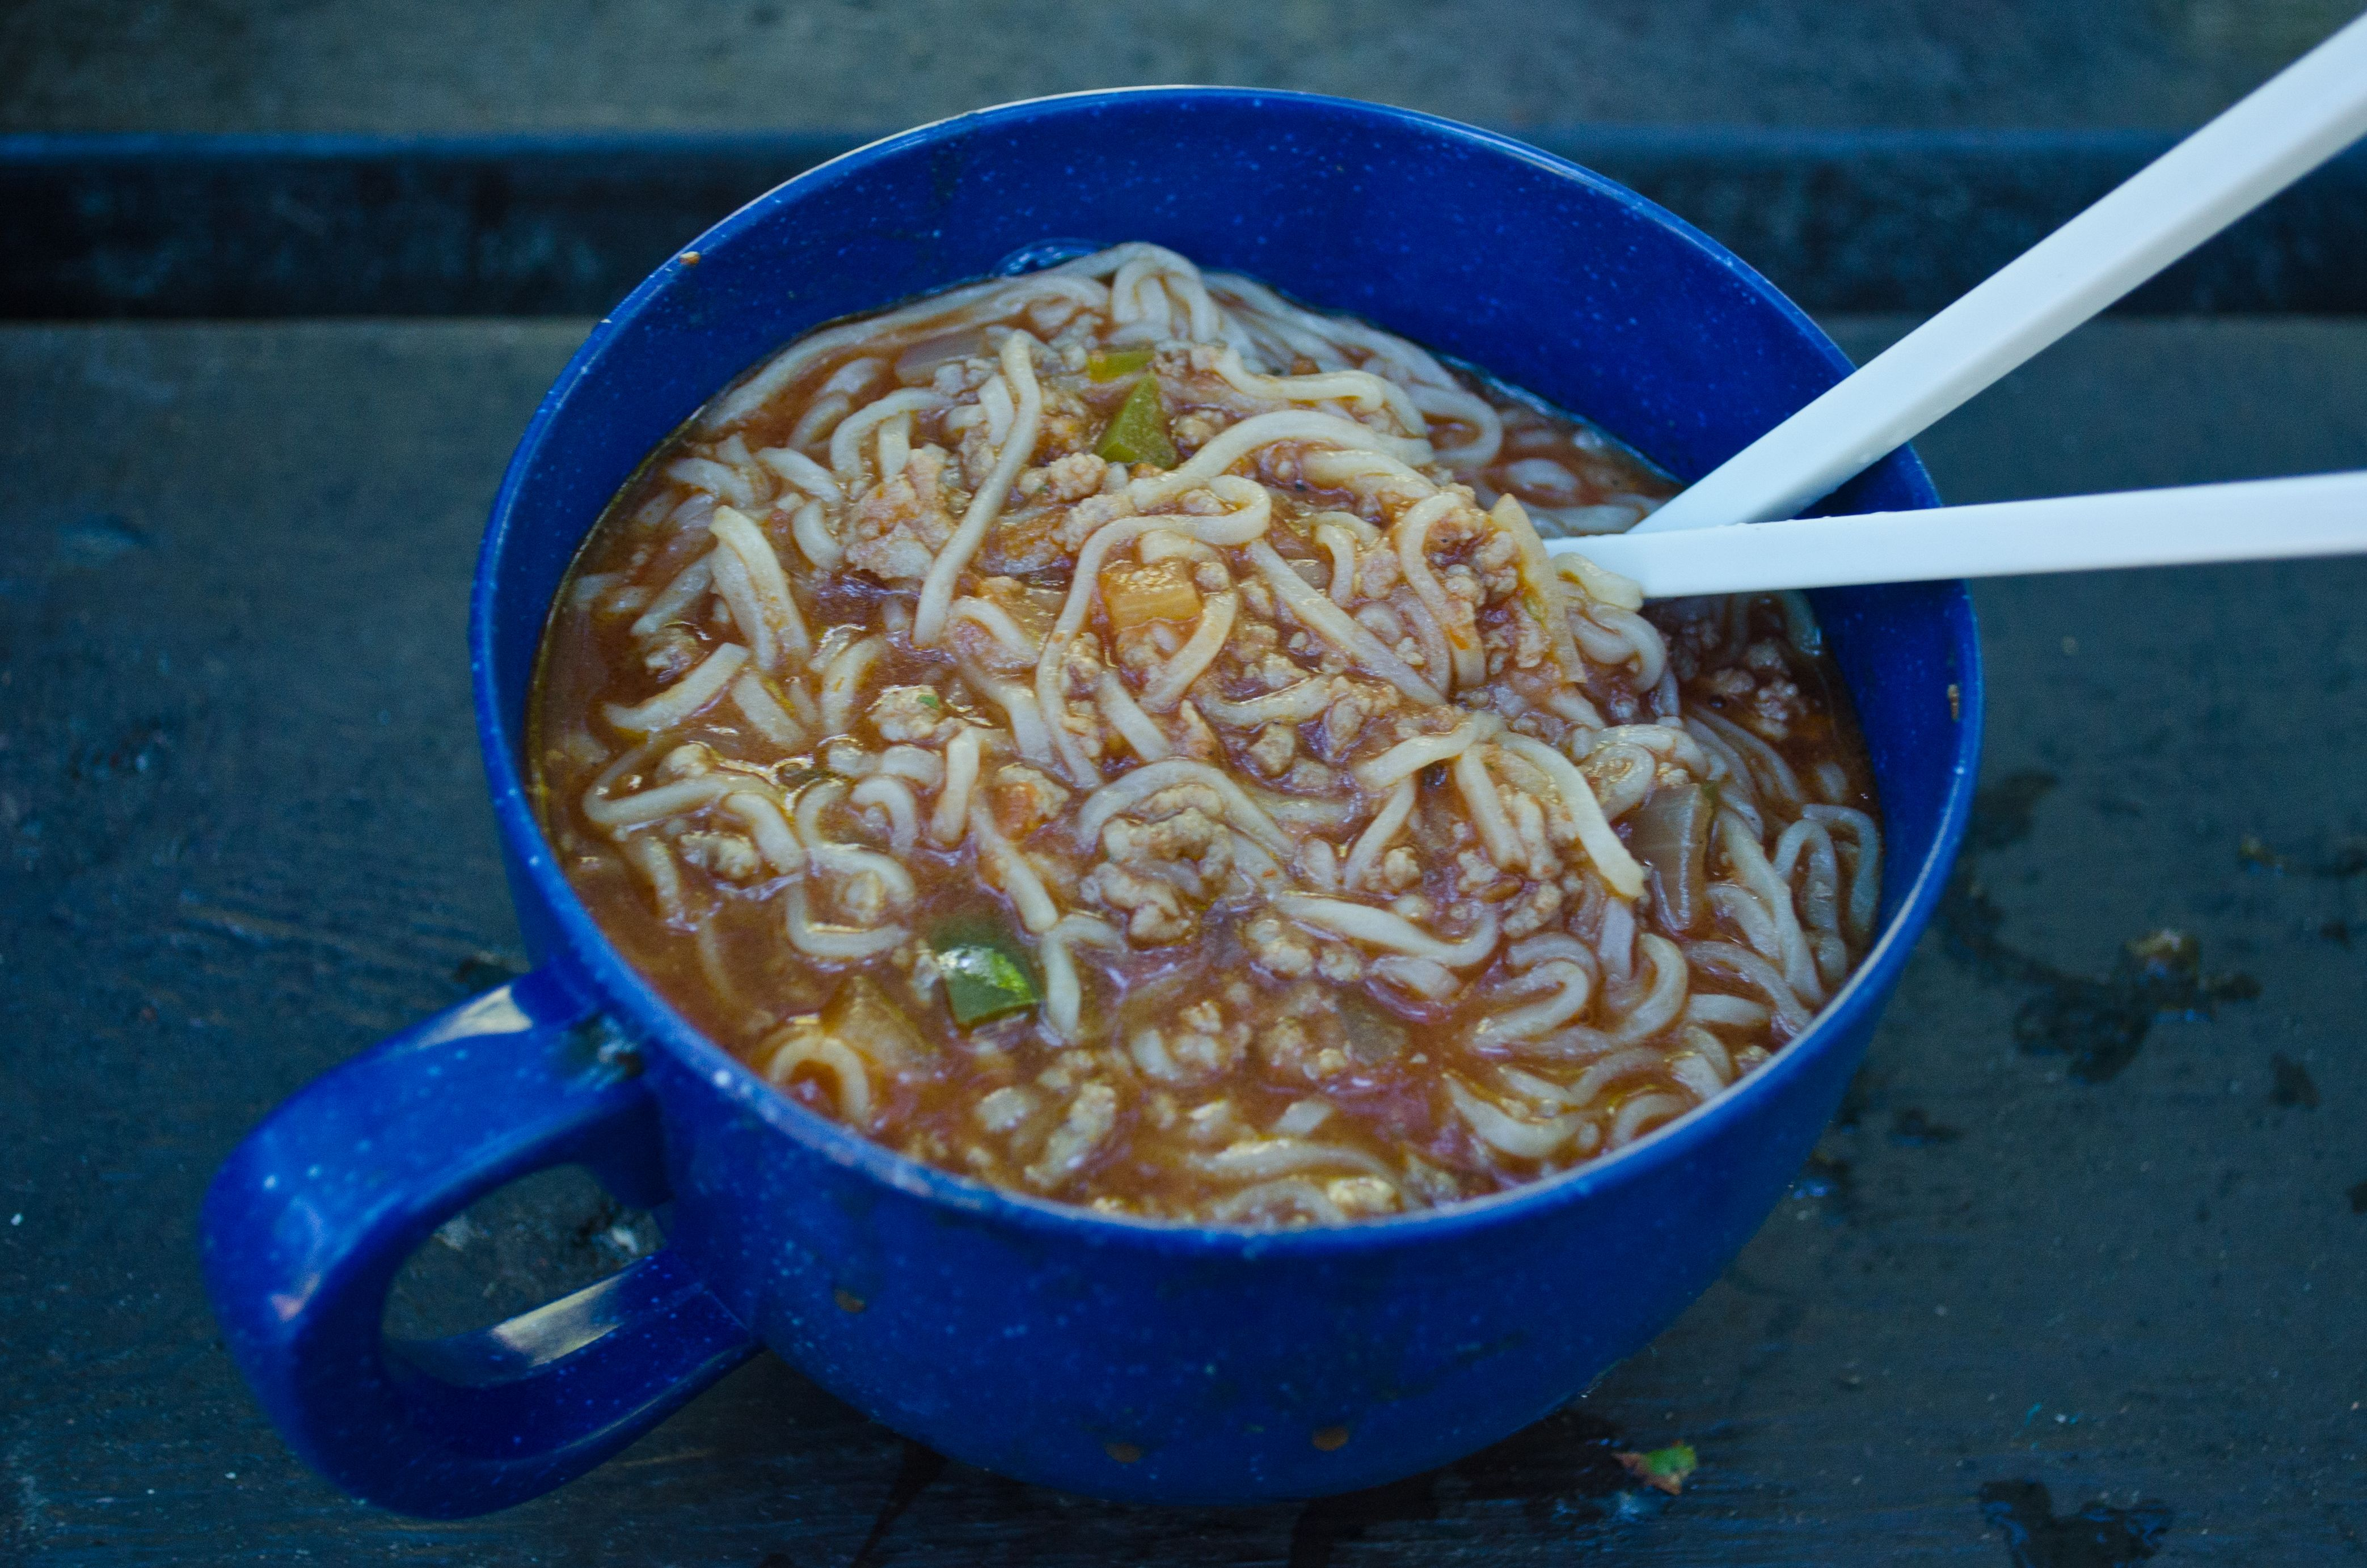 Sriracha Sloppy Joe ramen - Camping at Killbear